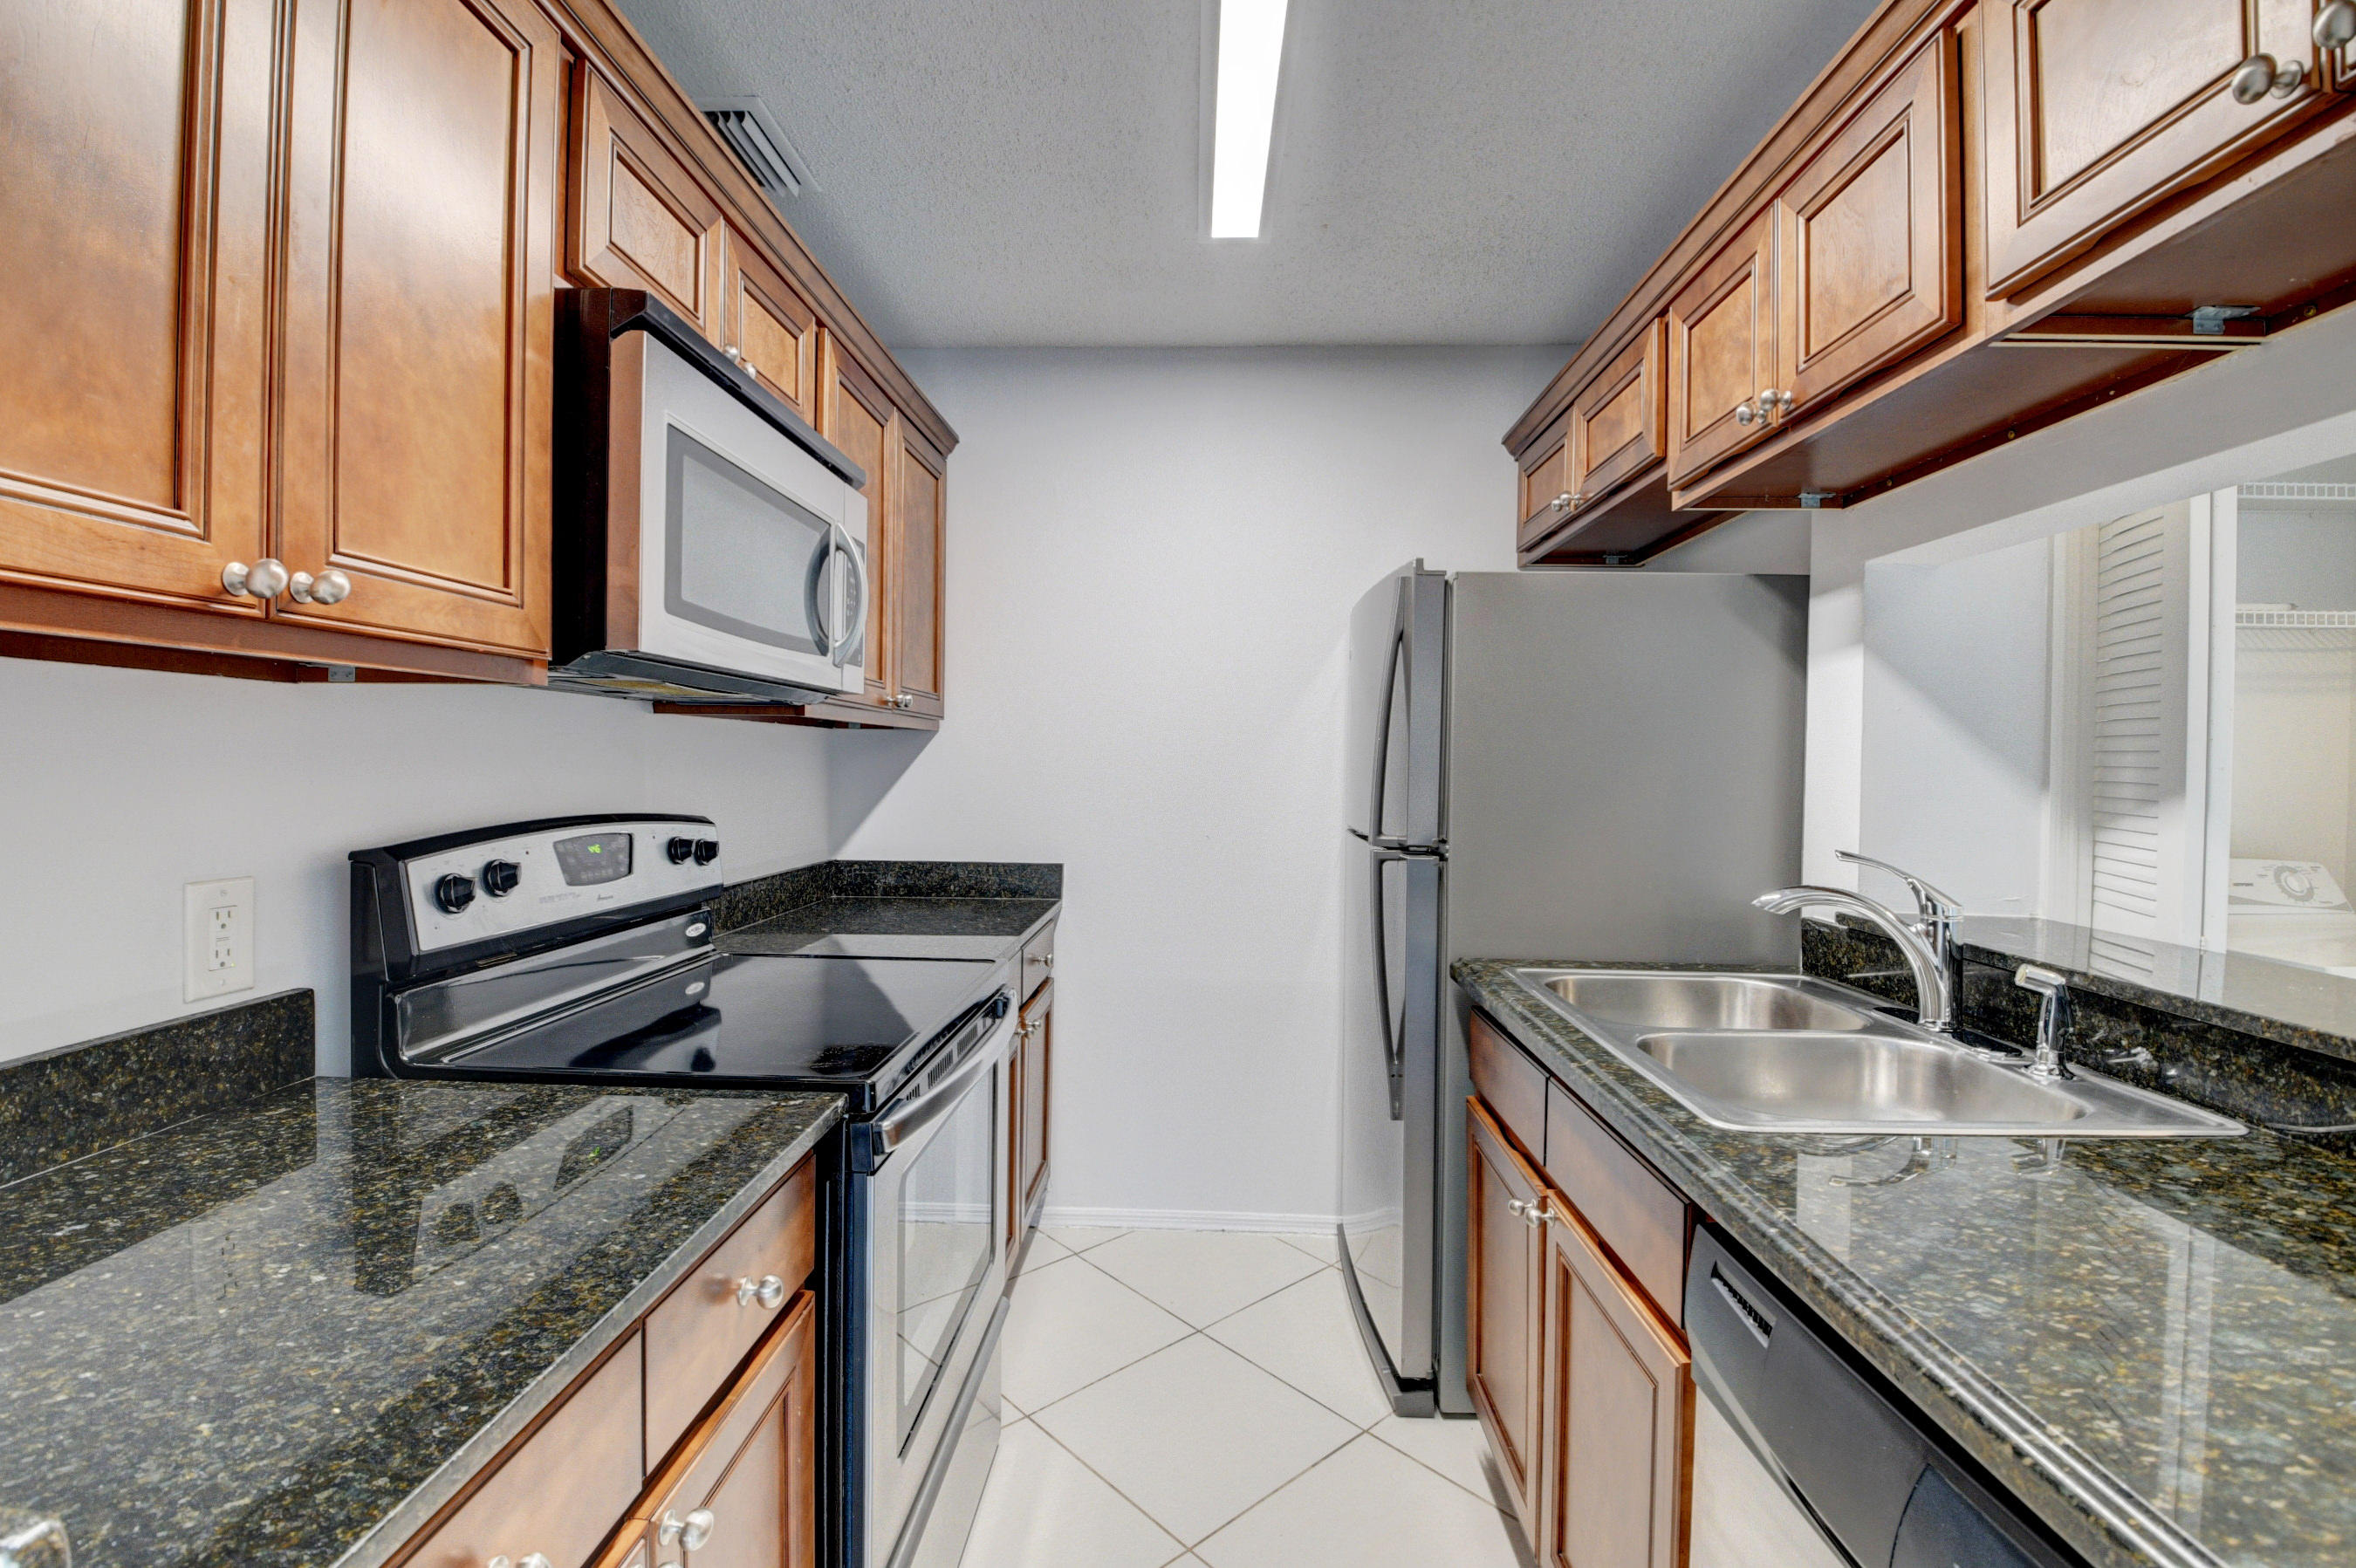 Move in ready condo in sought after area. *****PLEASE USE FAR BAR AS IS CONTRACT FOR SALE******